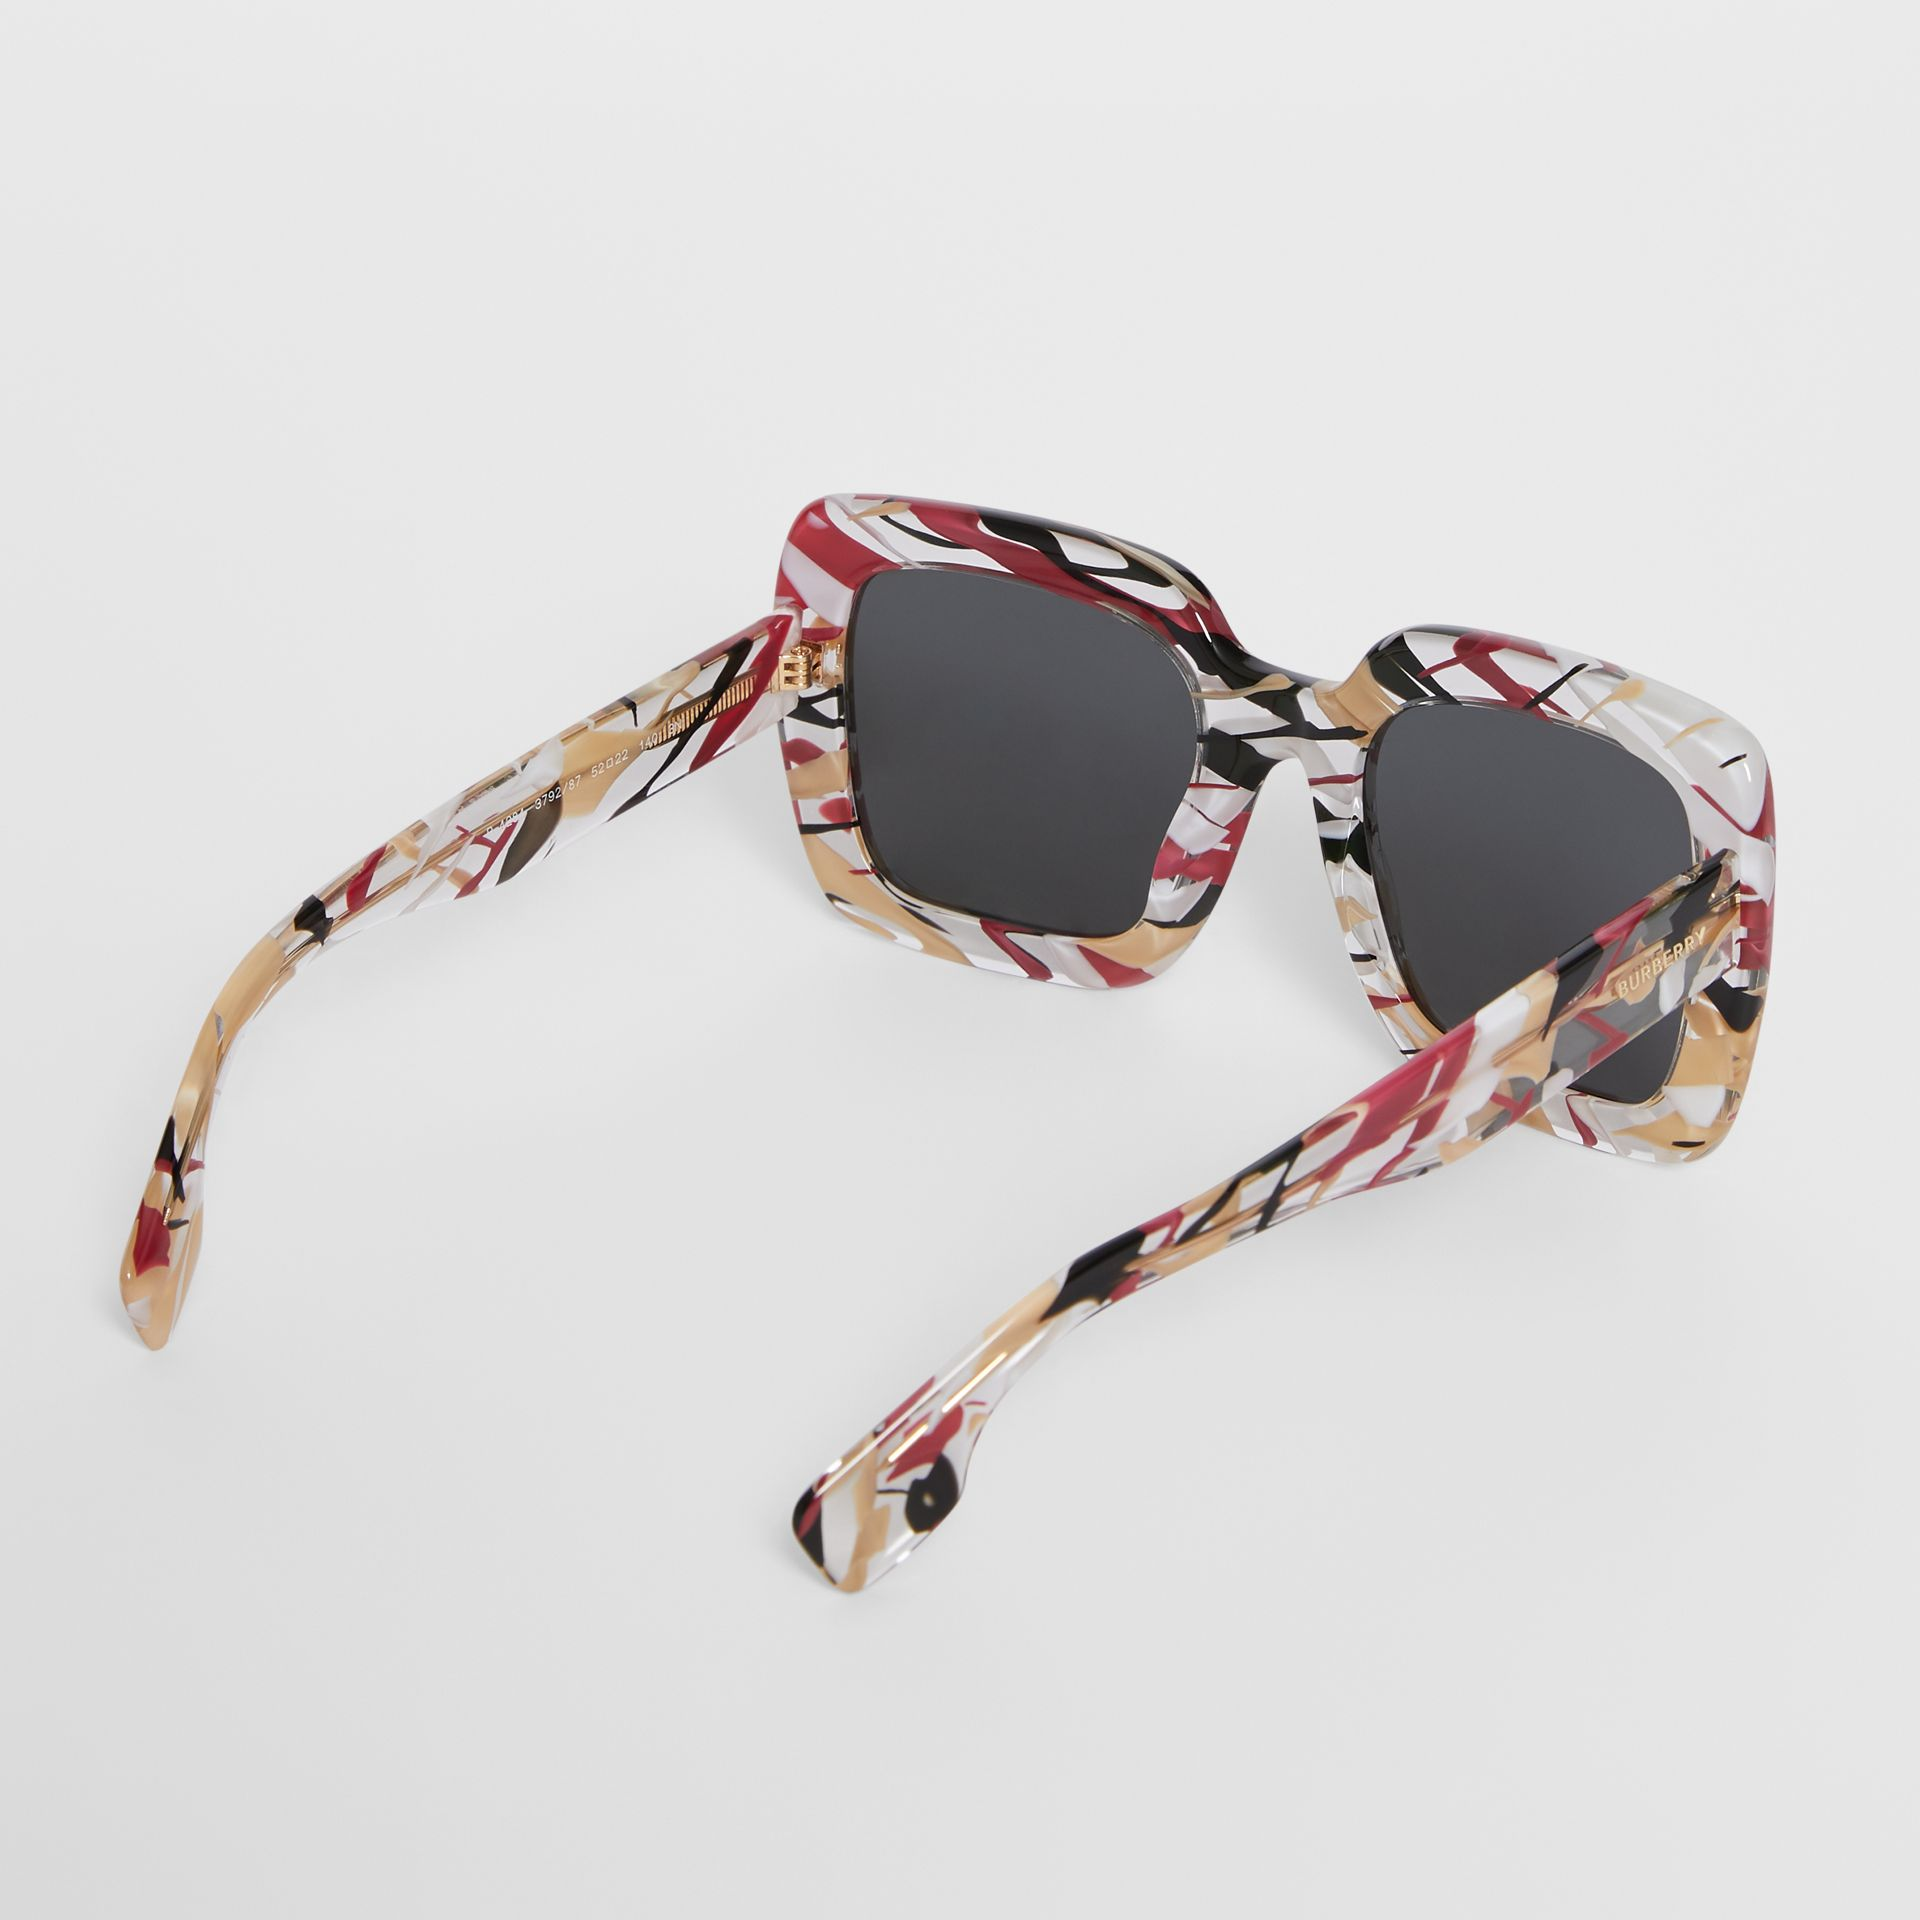 Marbled Check Oversized Square Frame Sunglasses in Lacquer Red - Women | Burberry United Kingdom - gallery image 4